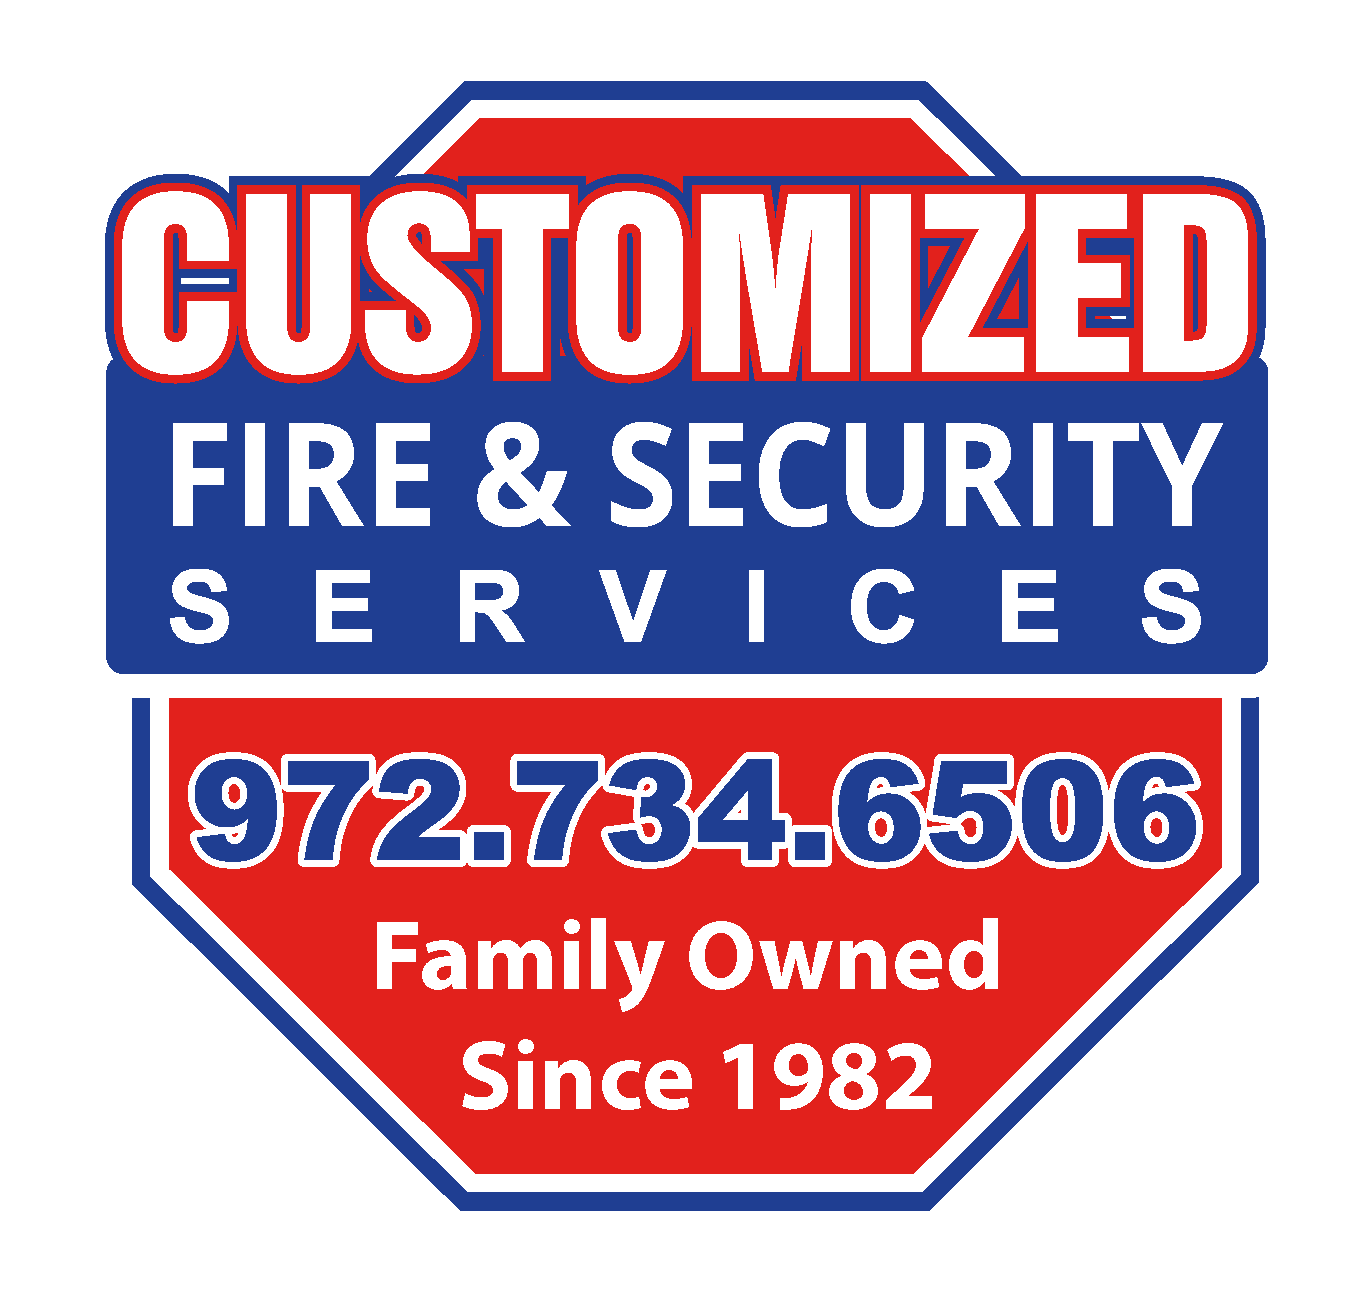 Customized Fire & Security Services